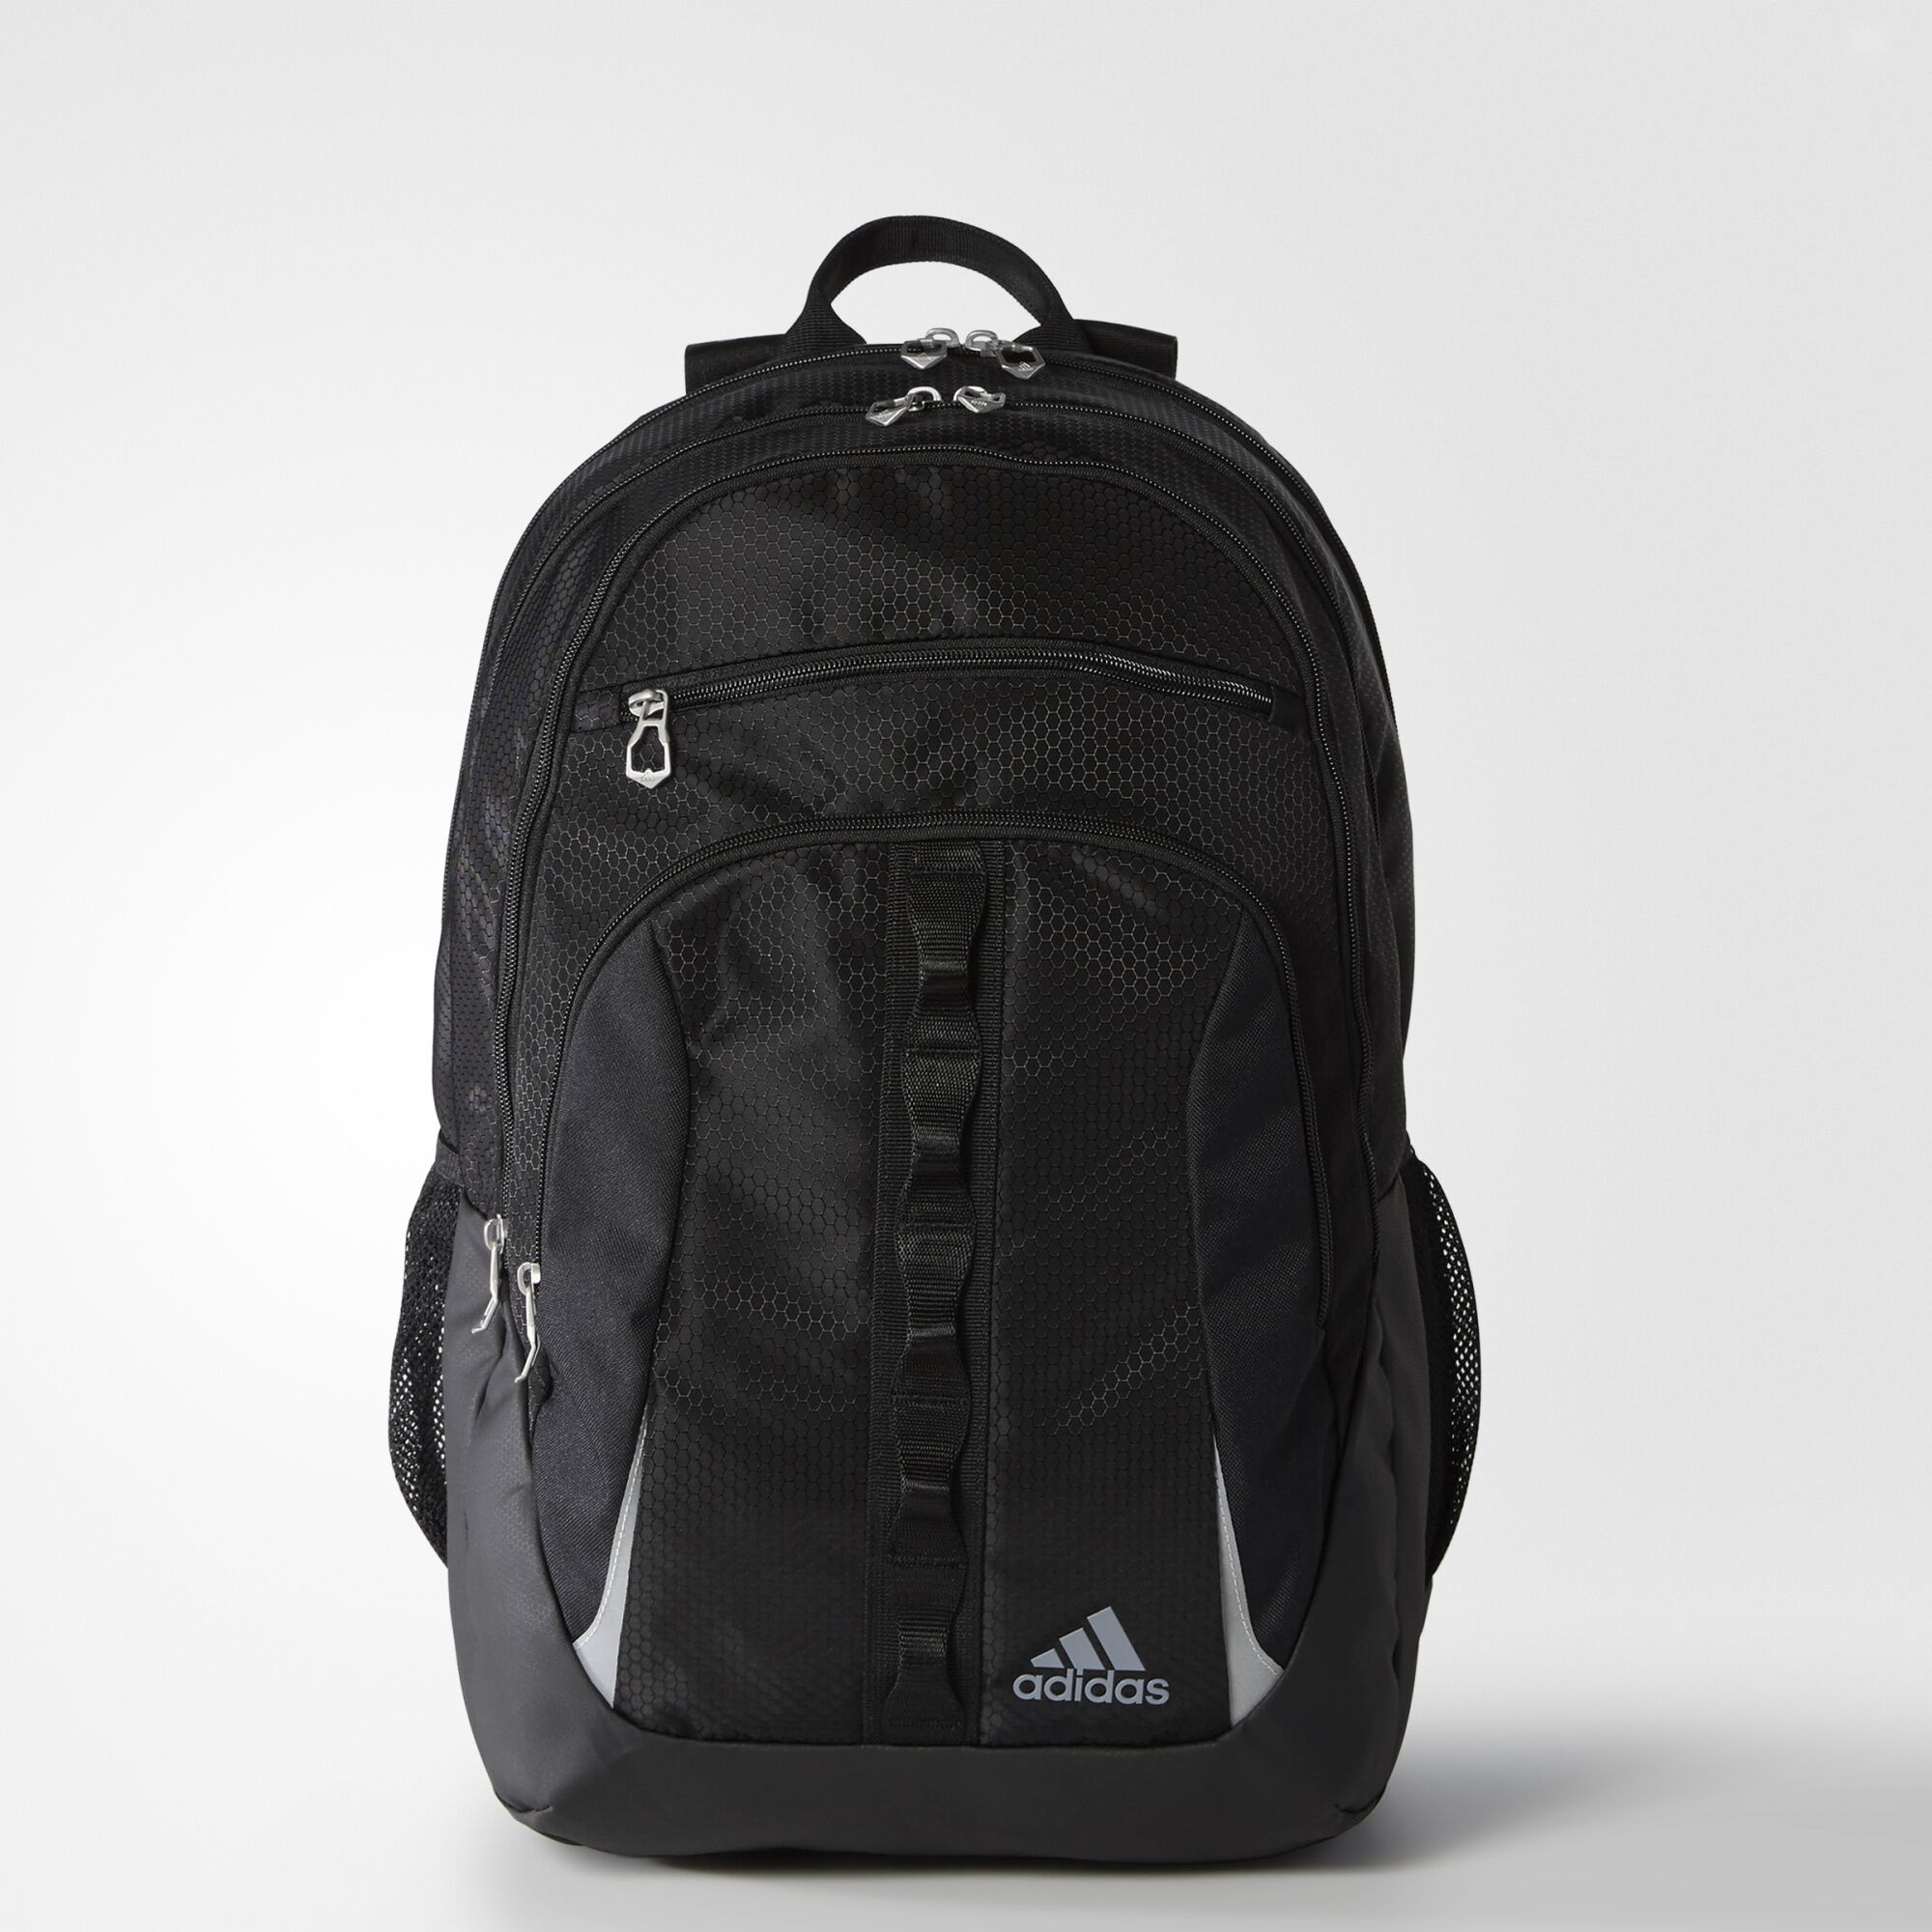 Buy adidas backpack load spring   OFF63% Discounted 6c4da1c4dc1c2